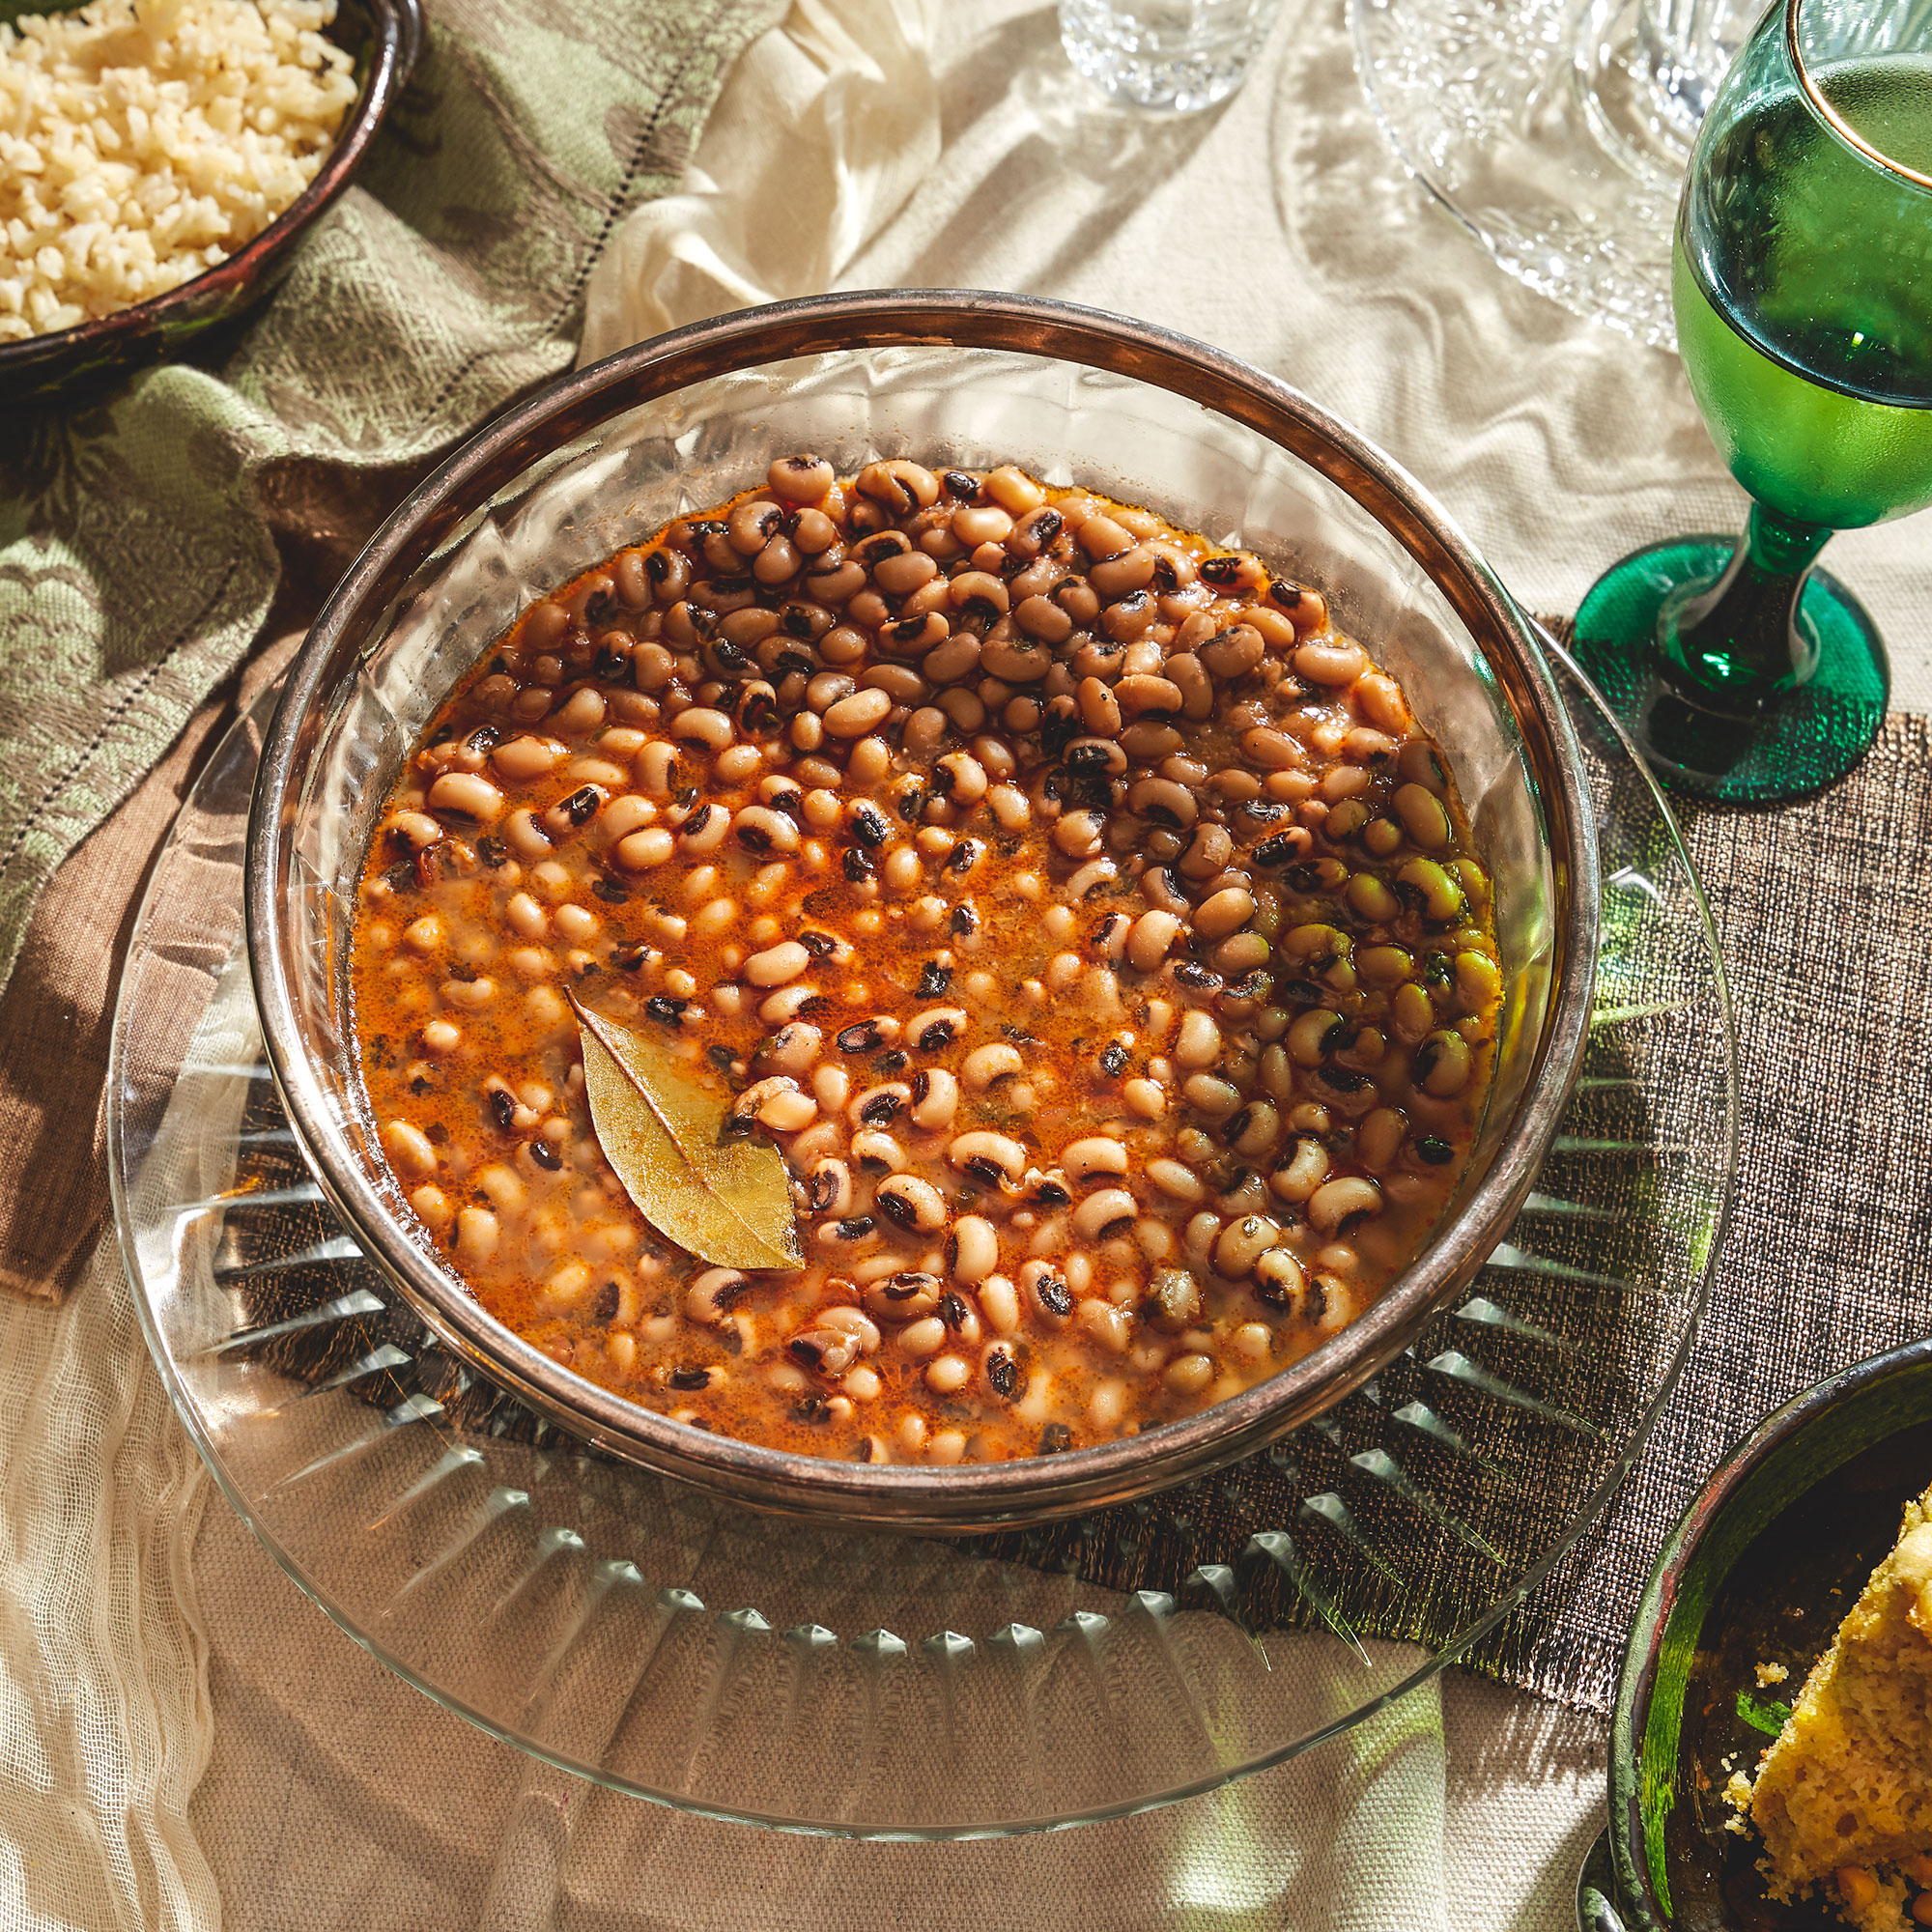 Black-eyed peas in a glass bowl